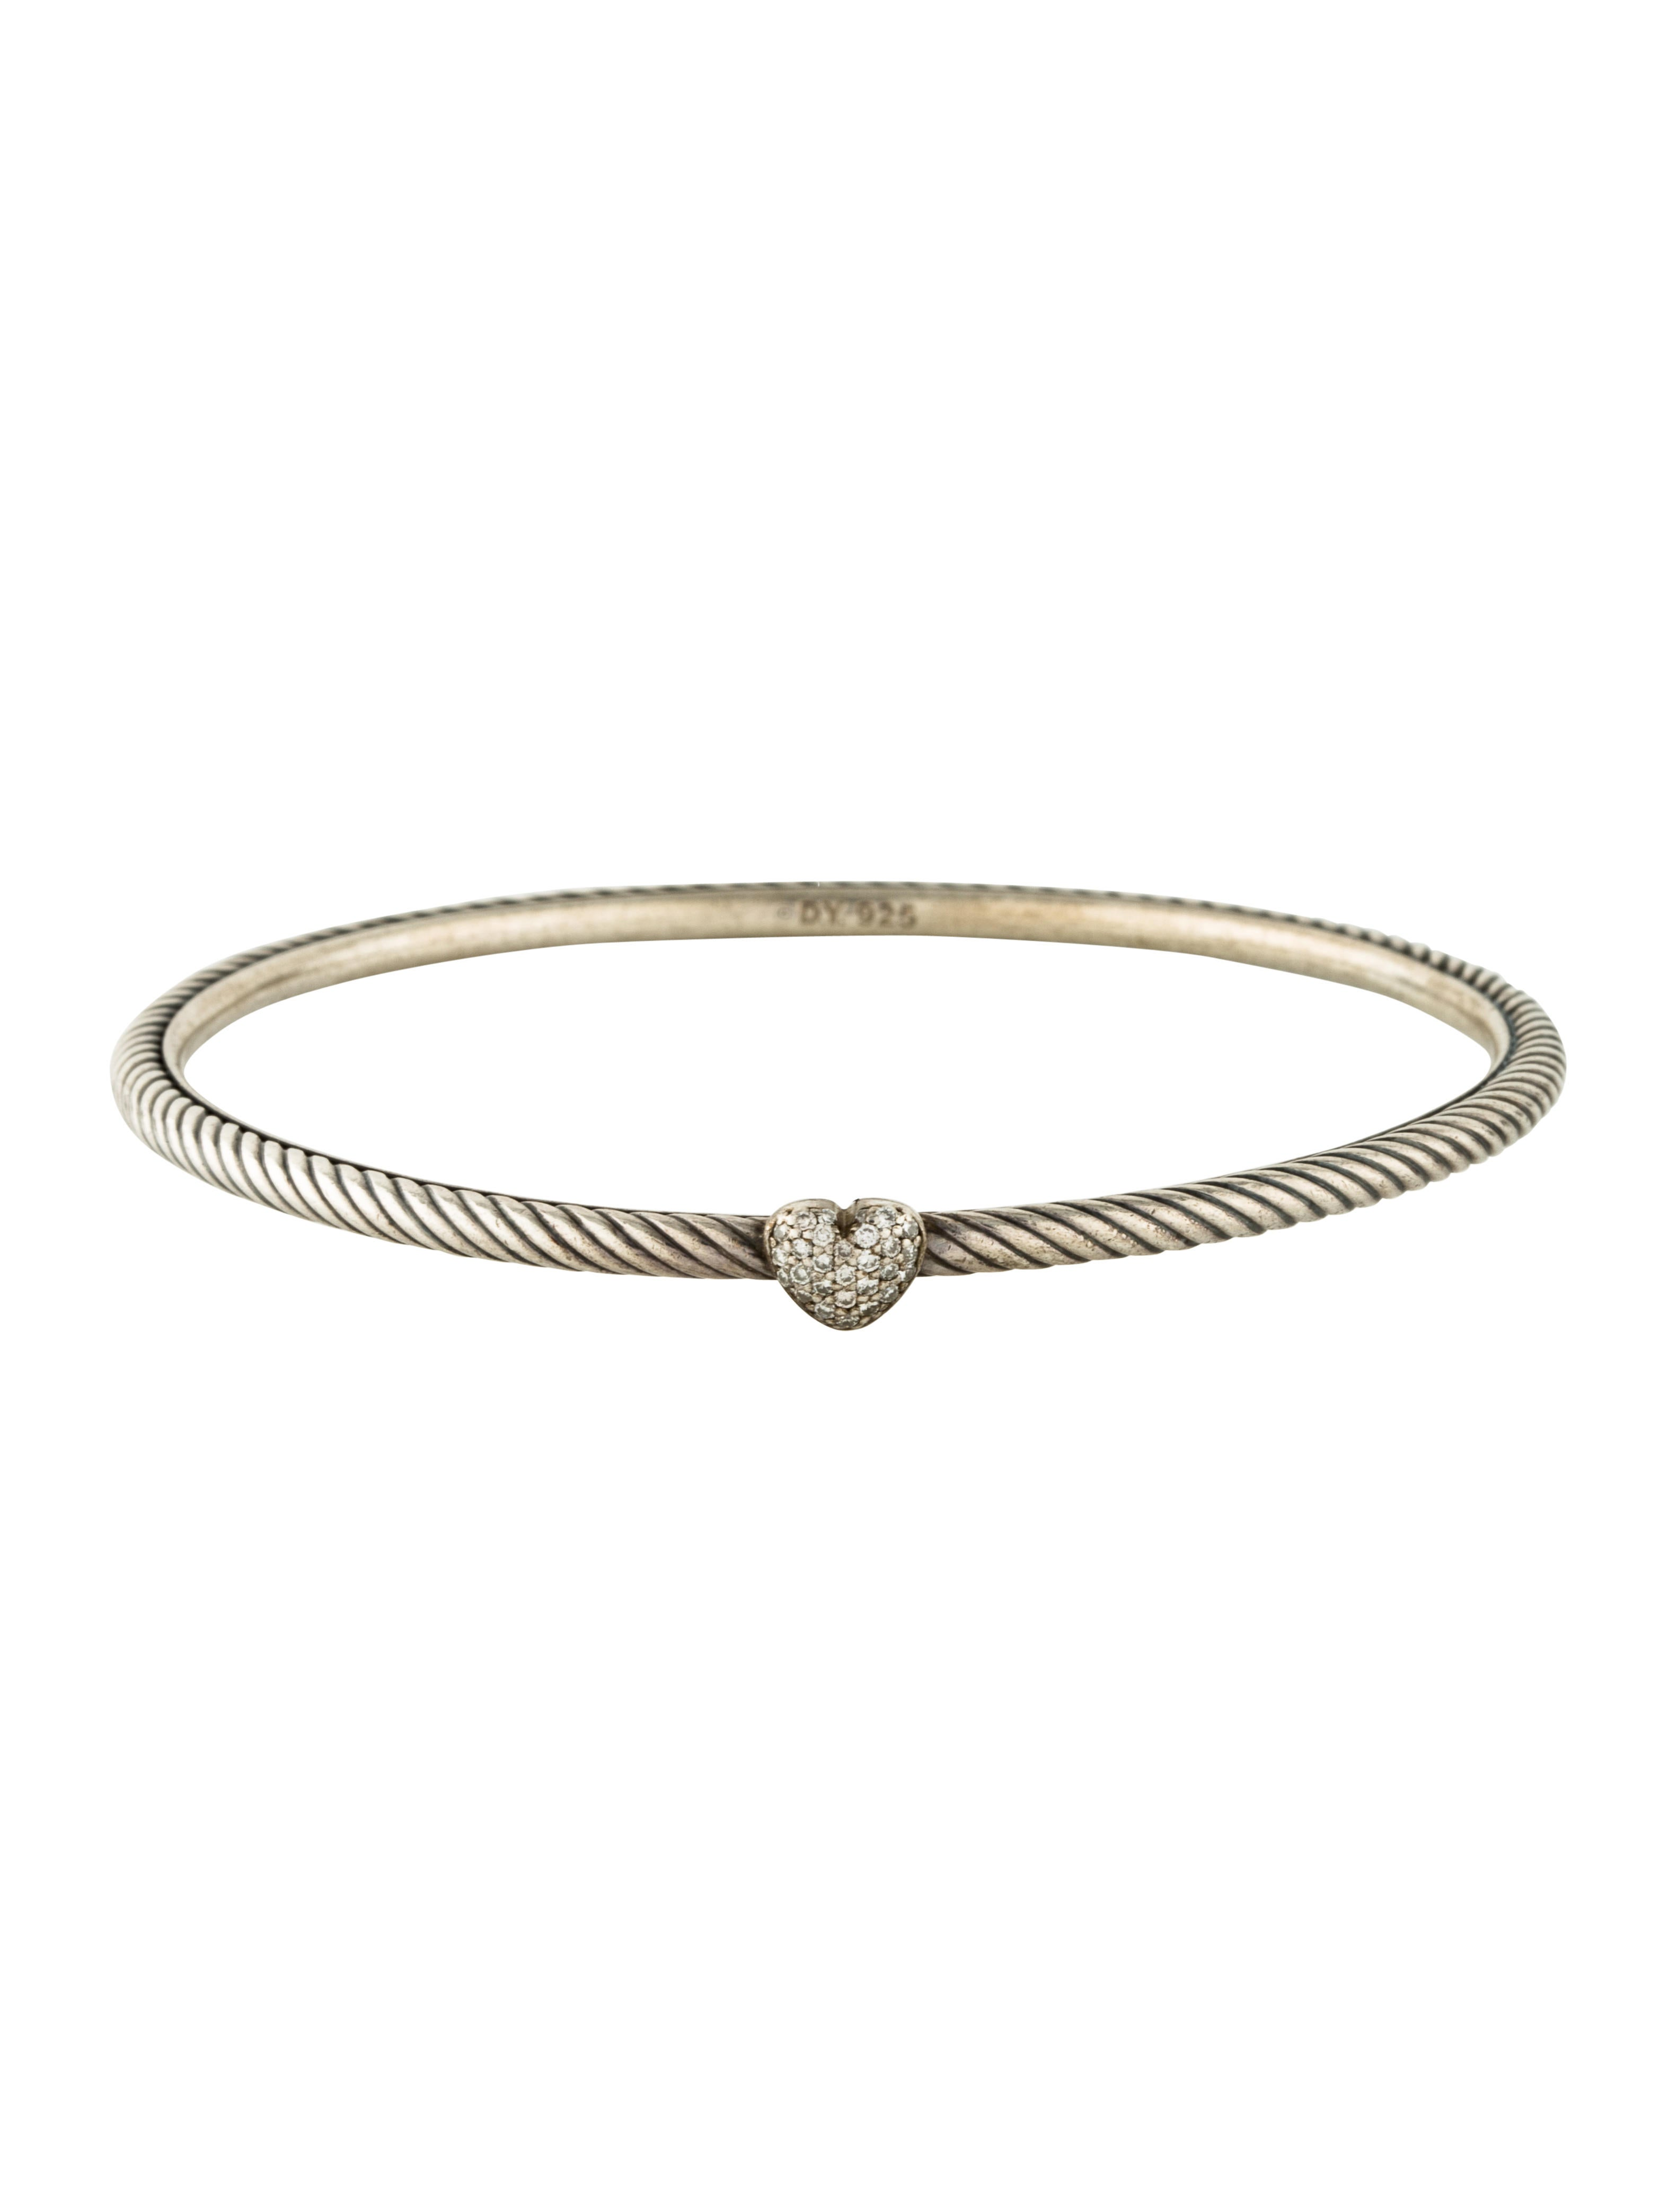 David yurman cable collectibles heart bracelet bracelets for David yurman inspired bracelet cable